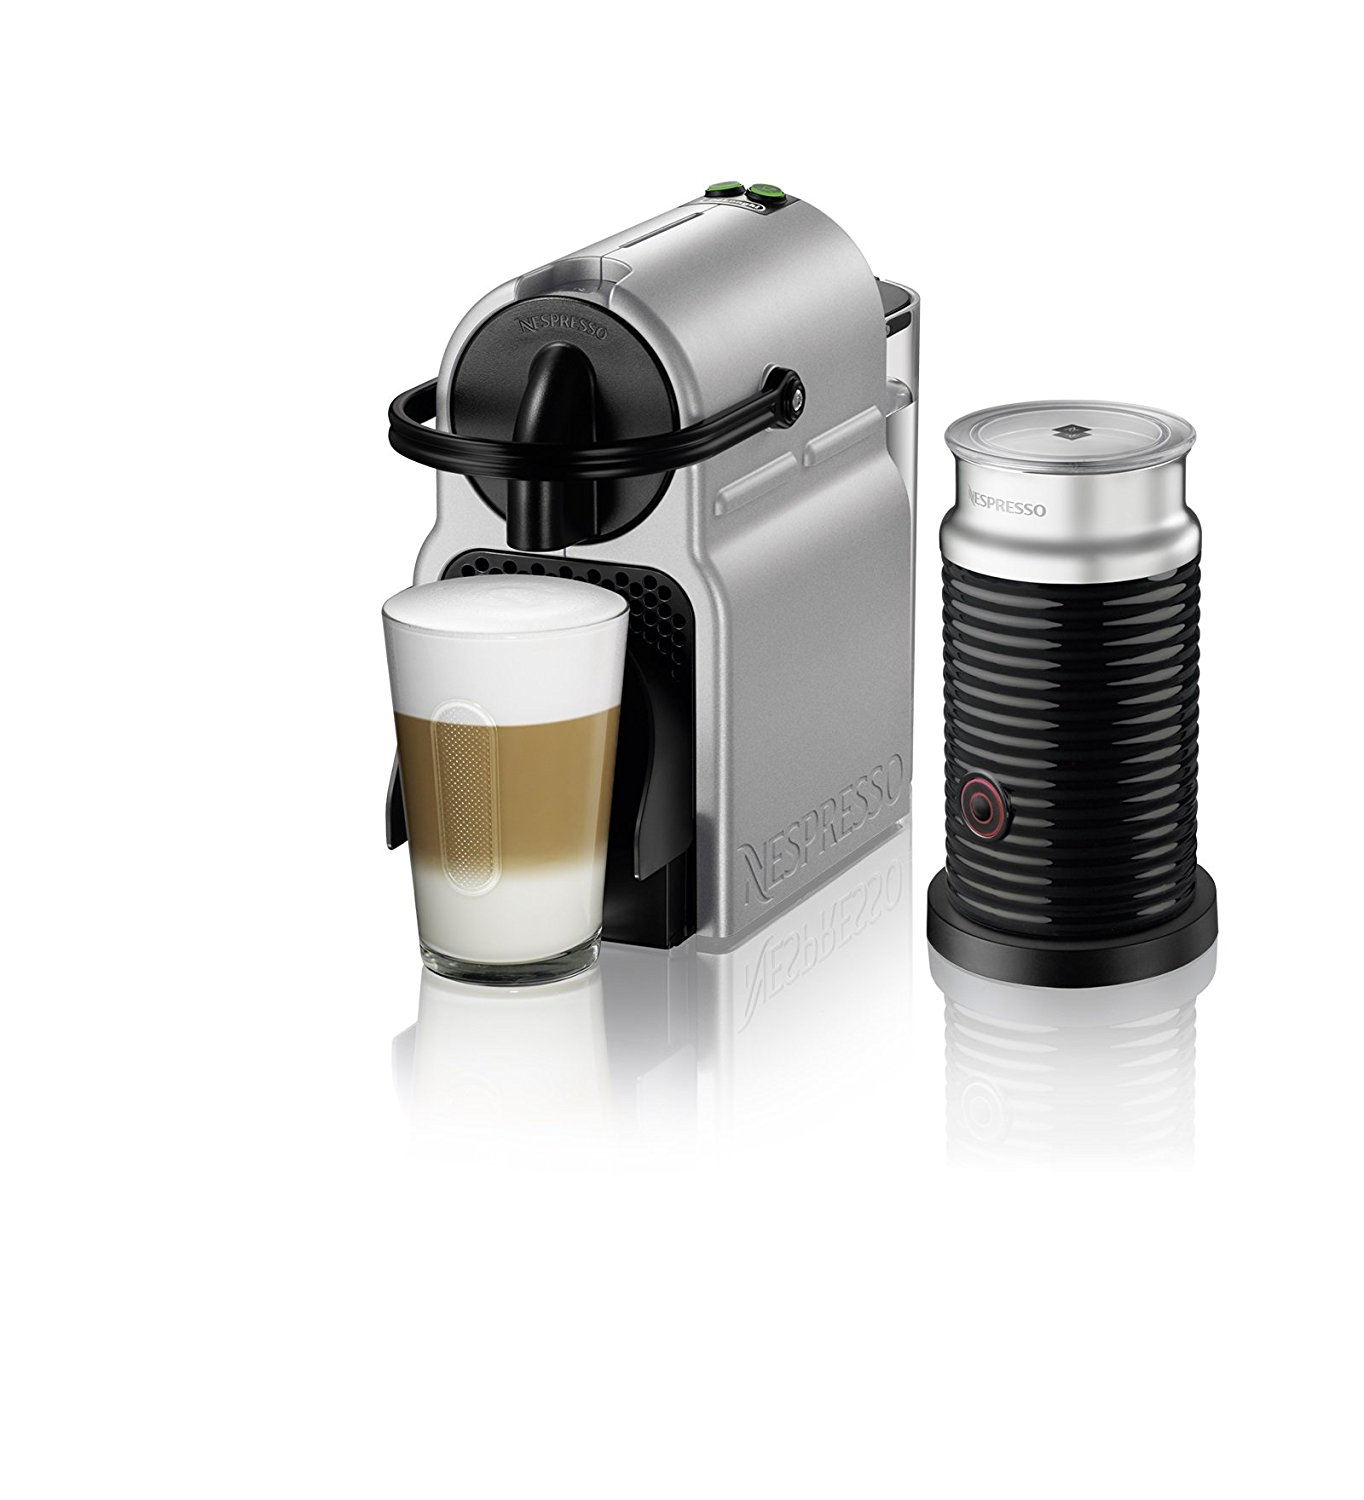 delonghi nespresso inissia silver single serve espresso machine with aeroccino 3 en80saeca - Delonghi Espresso Machine